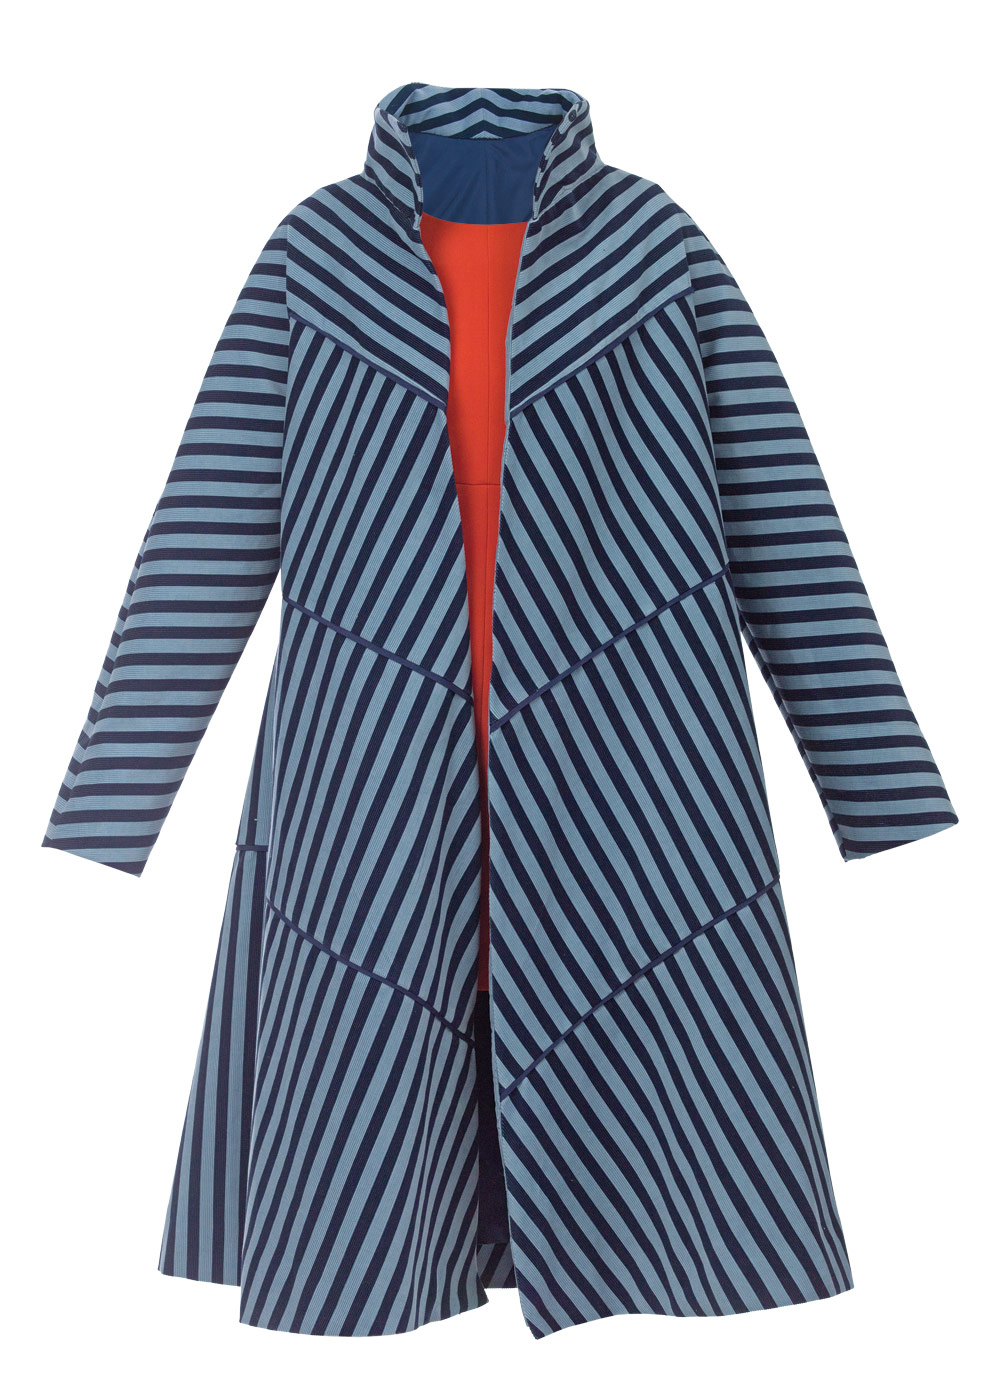 Pattern review center for pattern design bias tier coat threads sewing tip to increase upper arm fullness adjust the sleeve width at a point below the shoulder curve jeuxipadfo Gallery